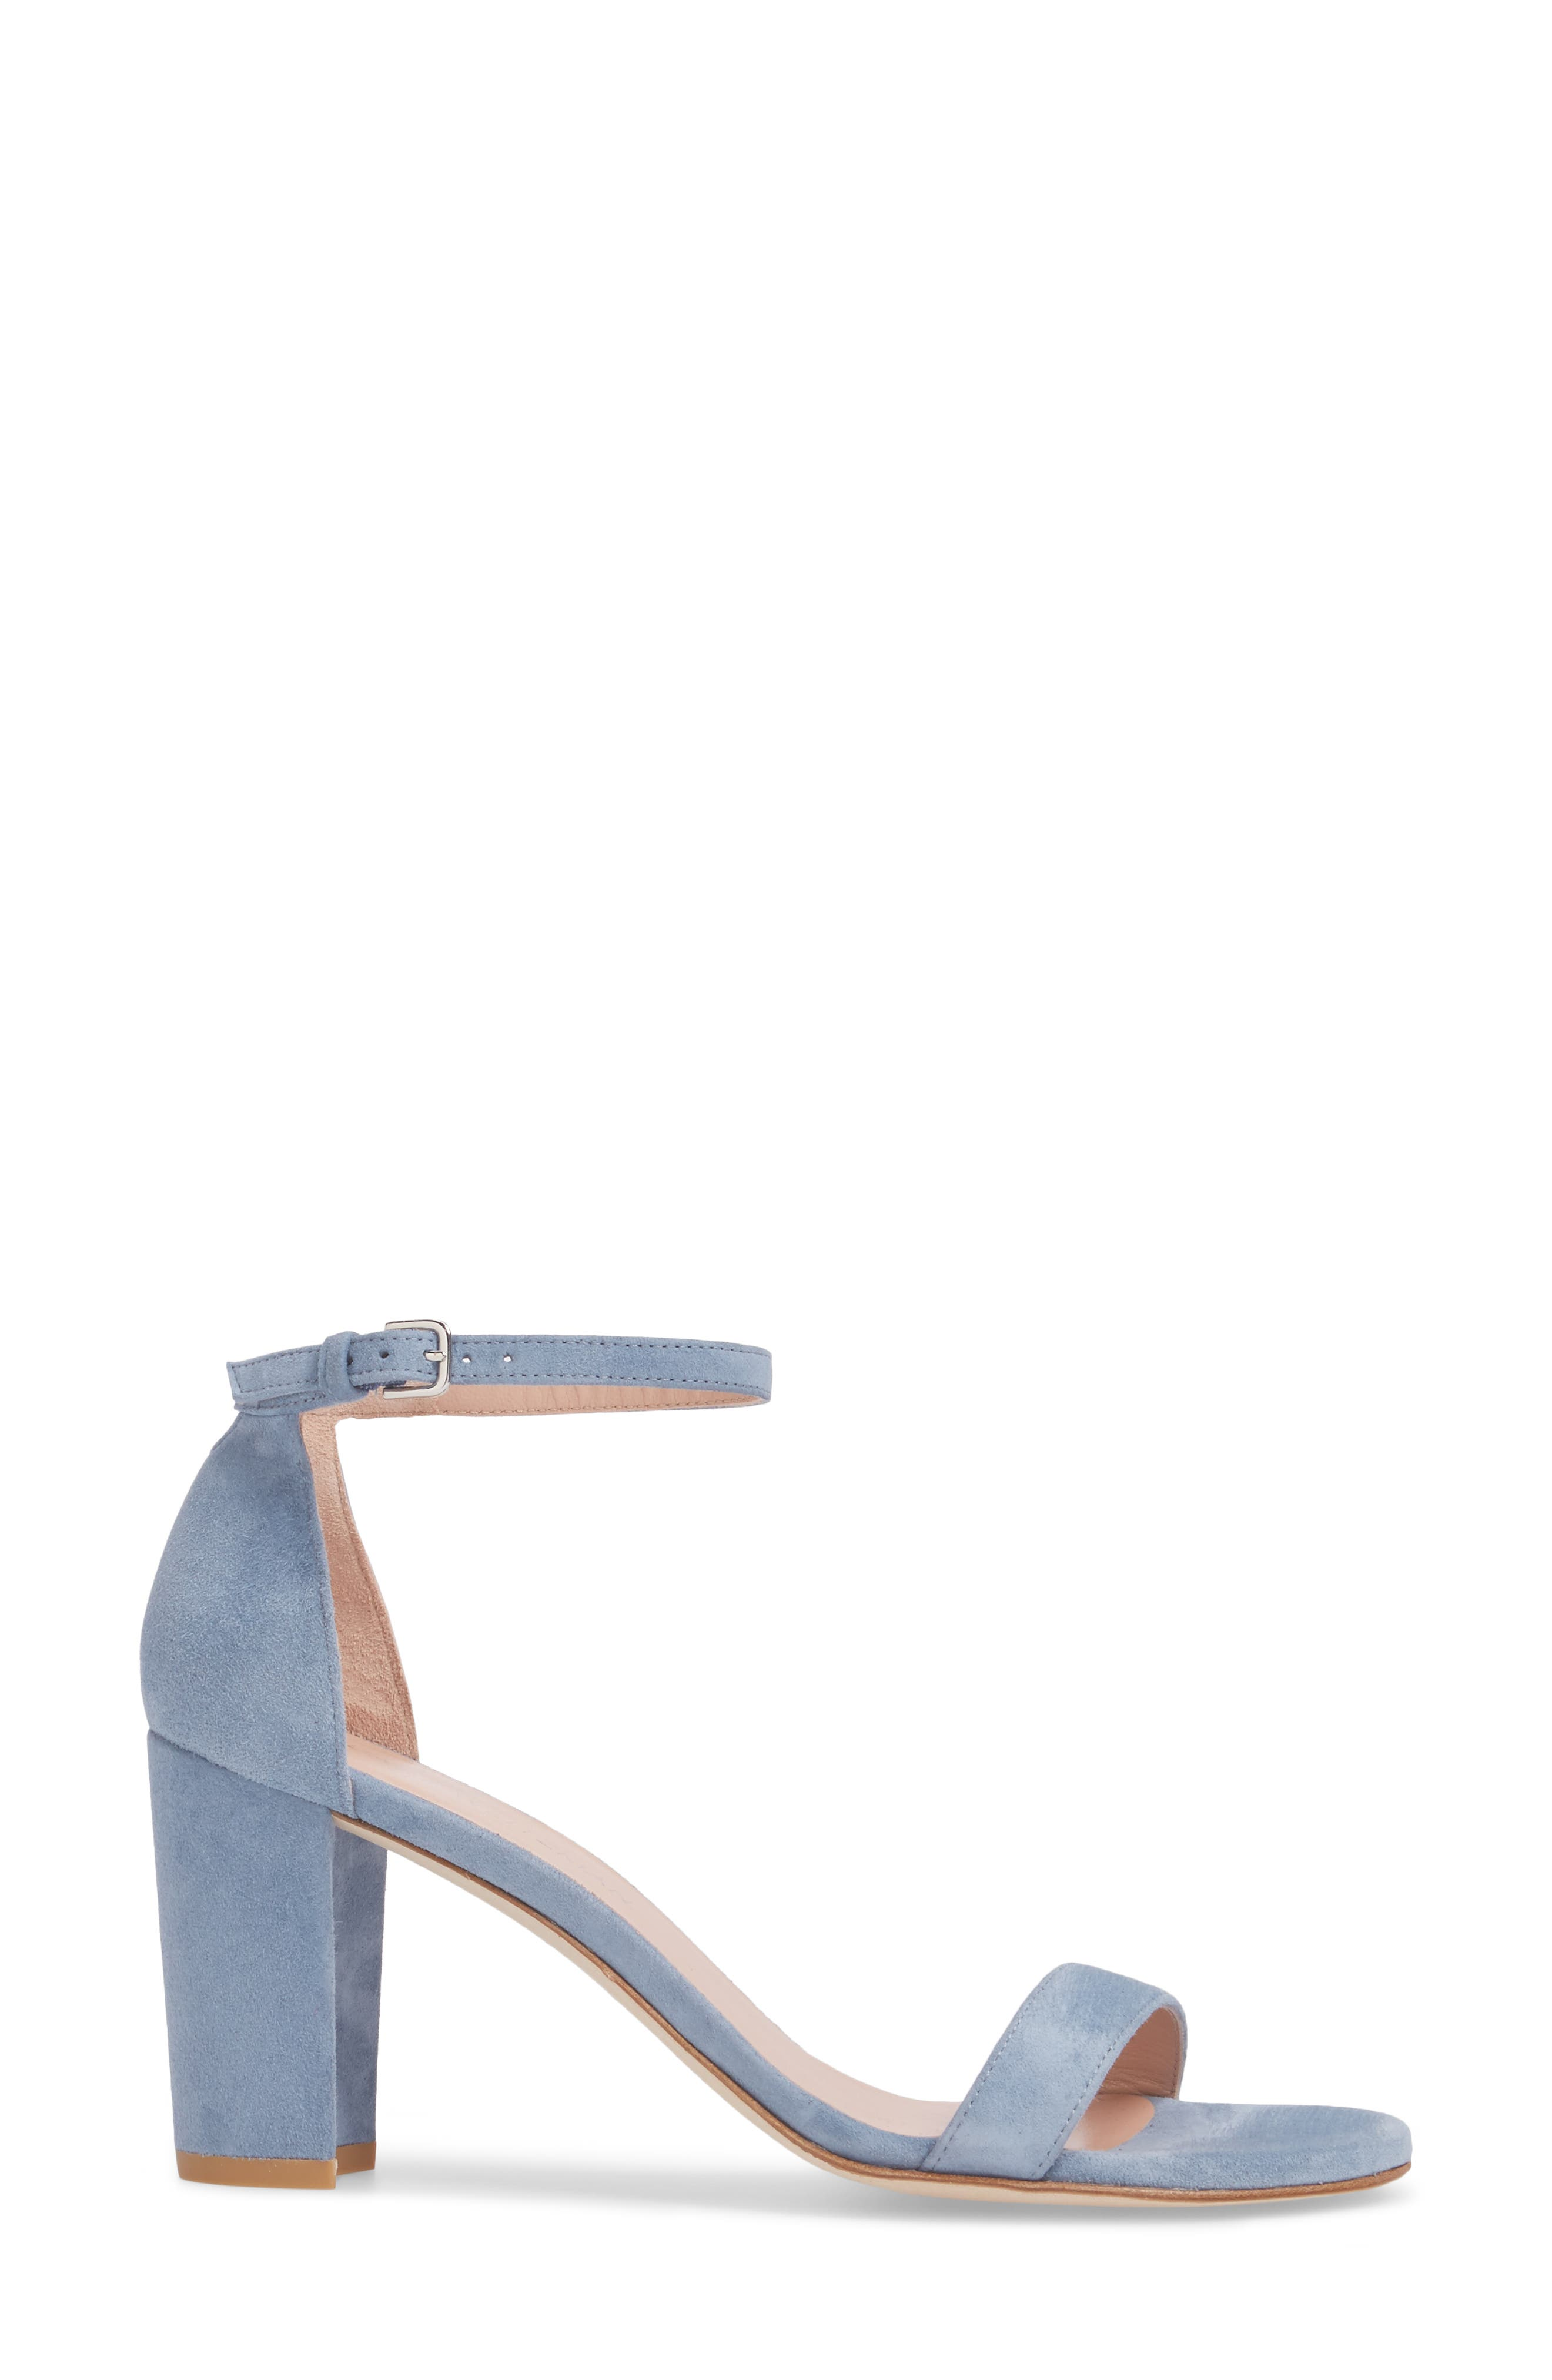 NearlyNude Ankle Strap Sandal,                             Alternate thumbnail 60, color,